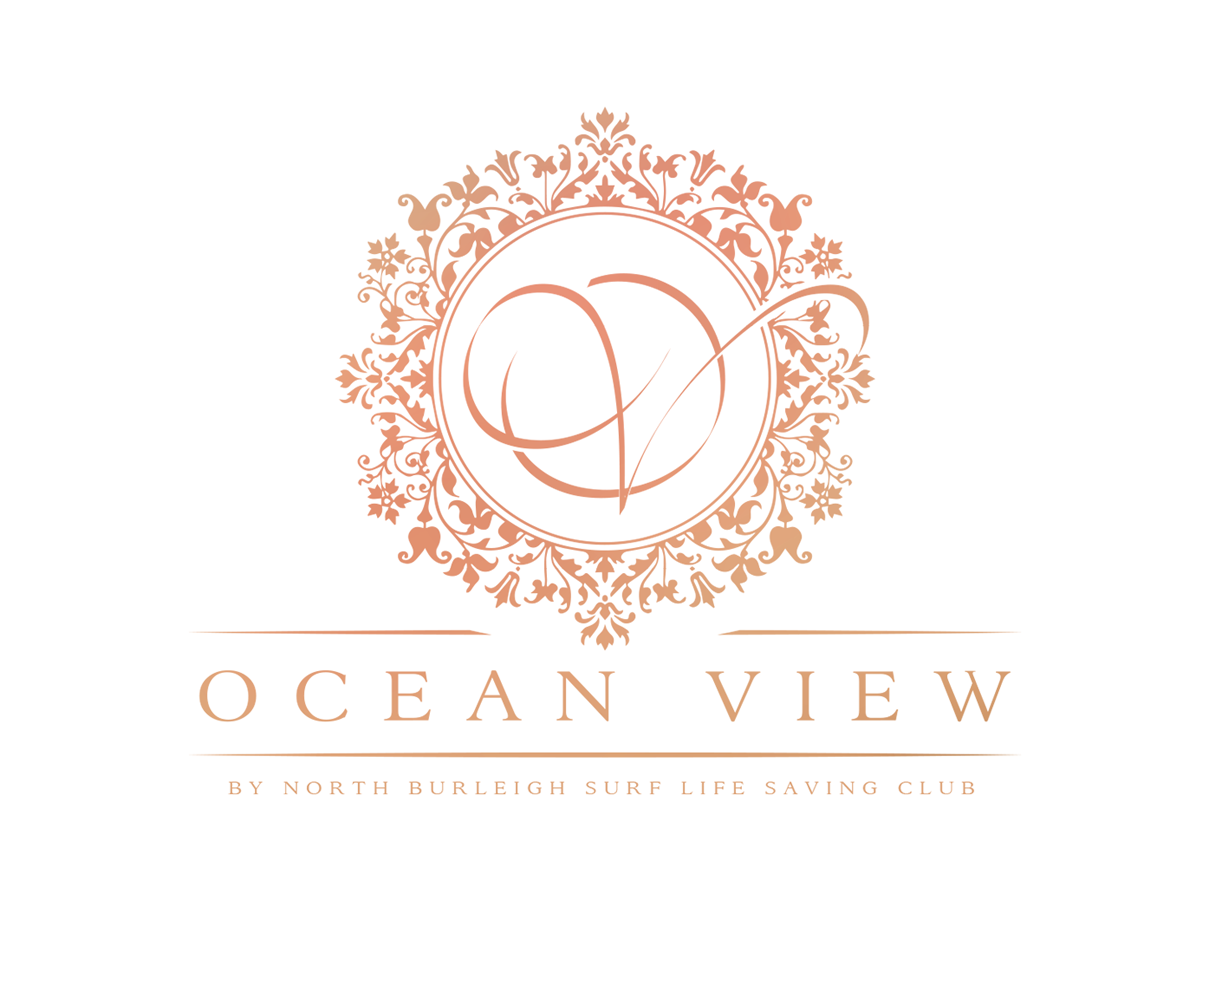 Ocean View Room by North Burleigh Surf Life Saving Club